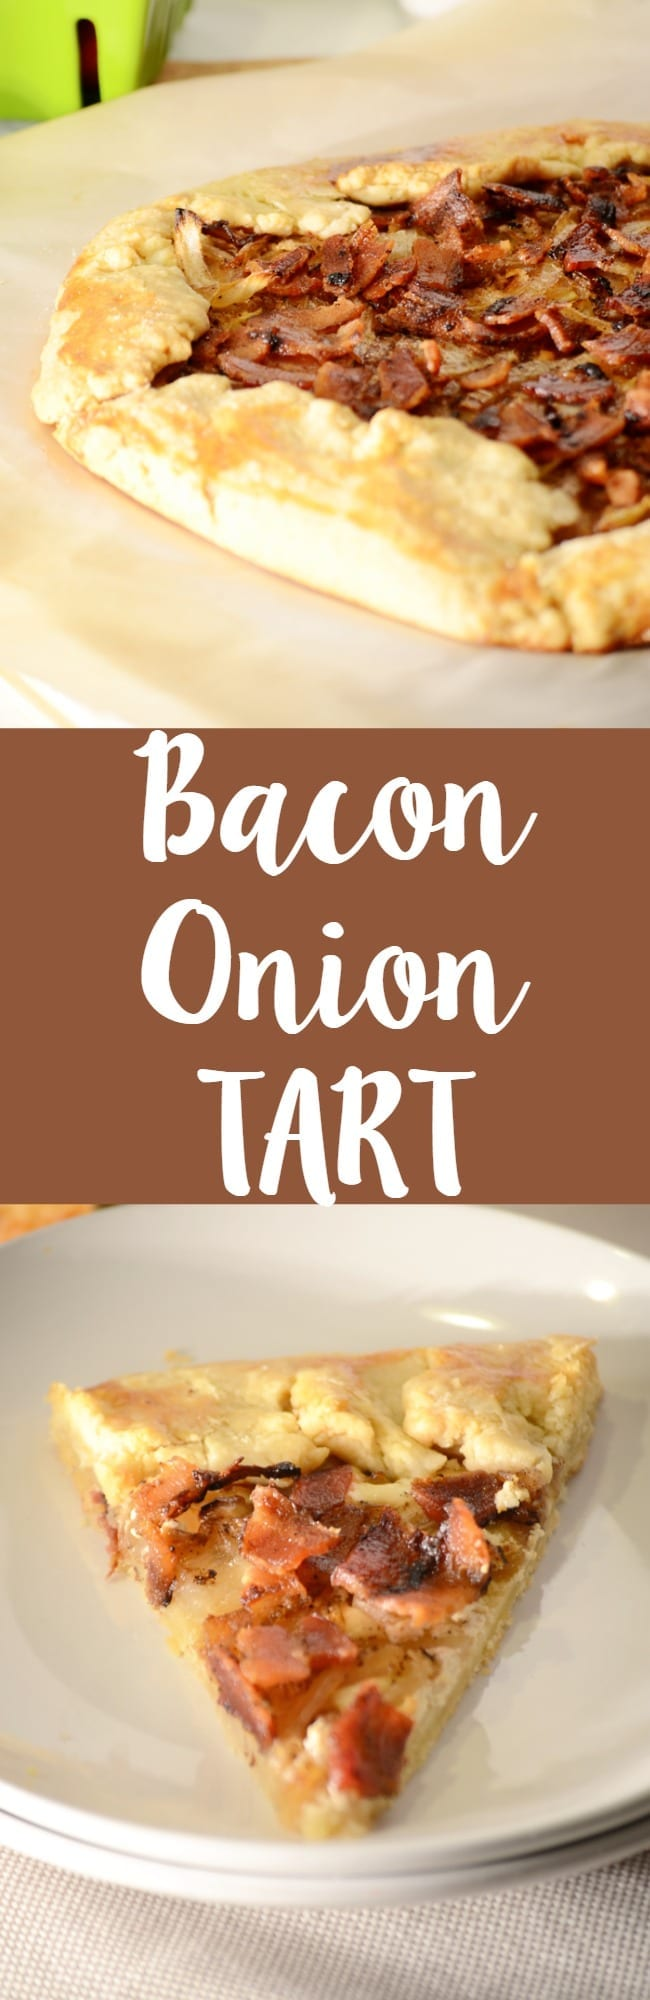 Delicious bacon onion tart recipe!  Homemade tart crust is packed full of crispy bacon and caramelized onion!